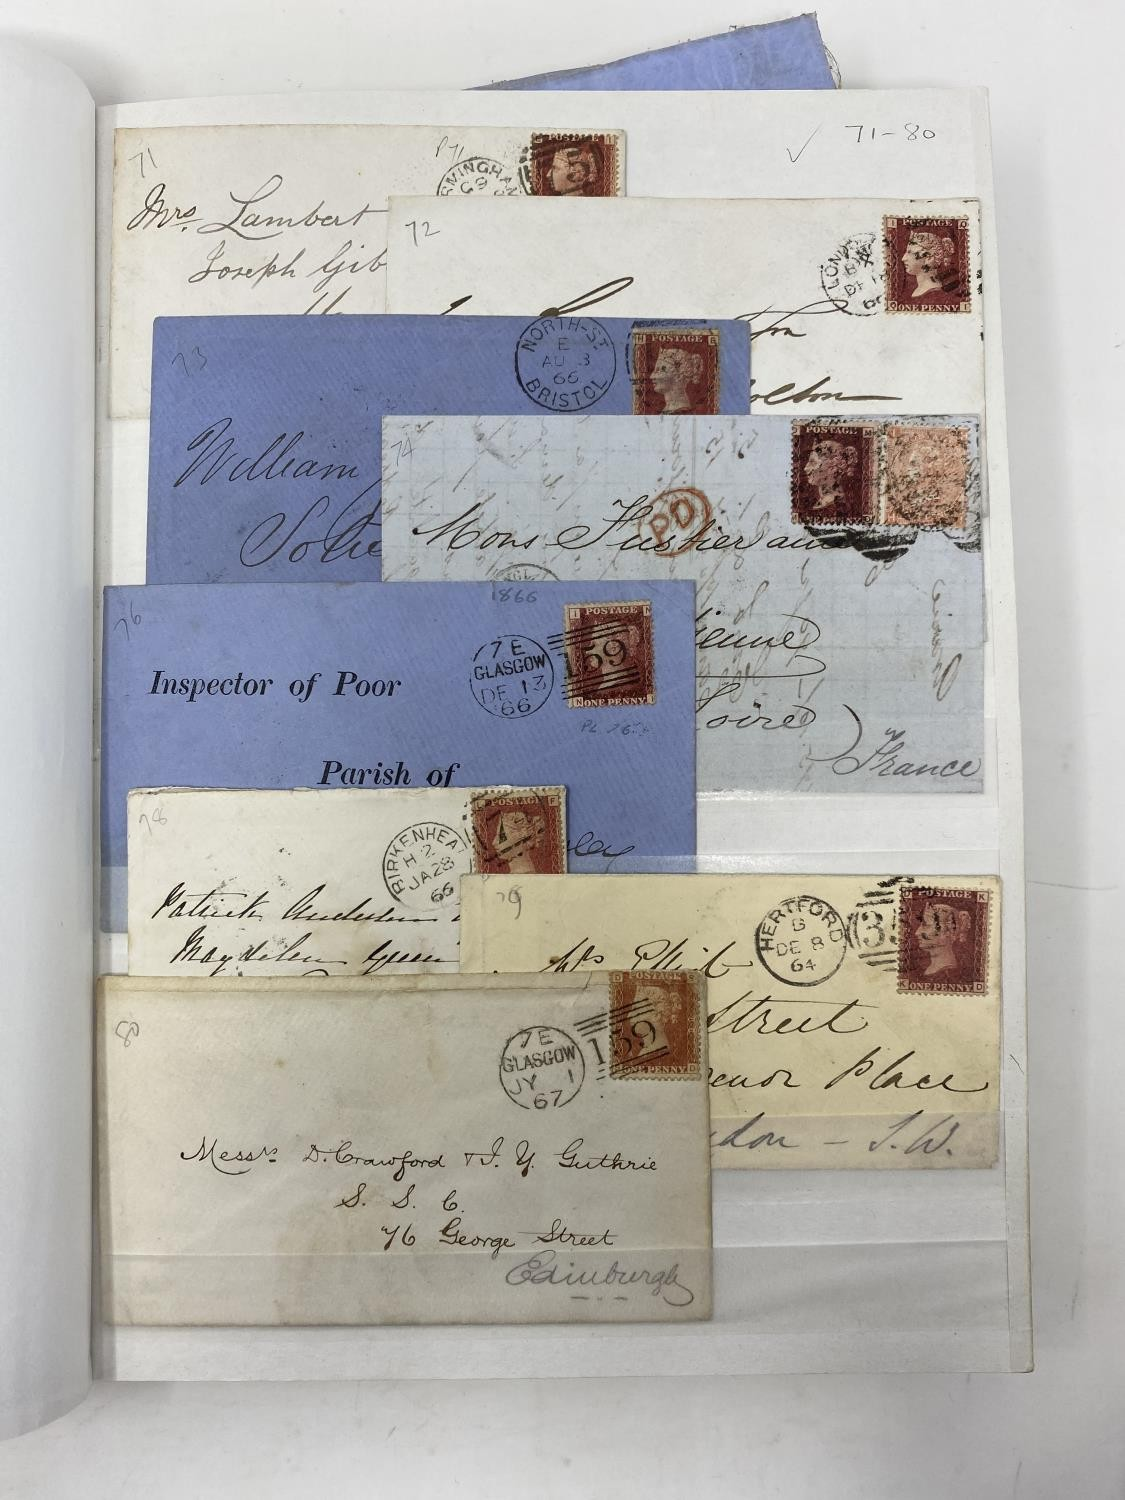 Great Britain 1858-79 1d red Plate numbers issue, a fine complete collection of plates 71-224 (excl. - Image 2 of 3